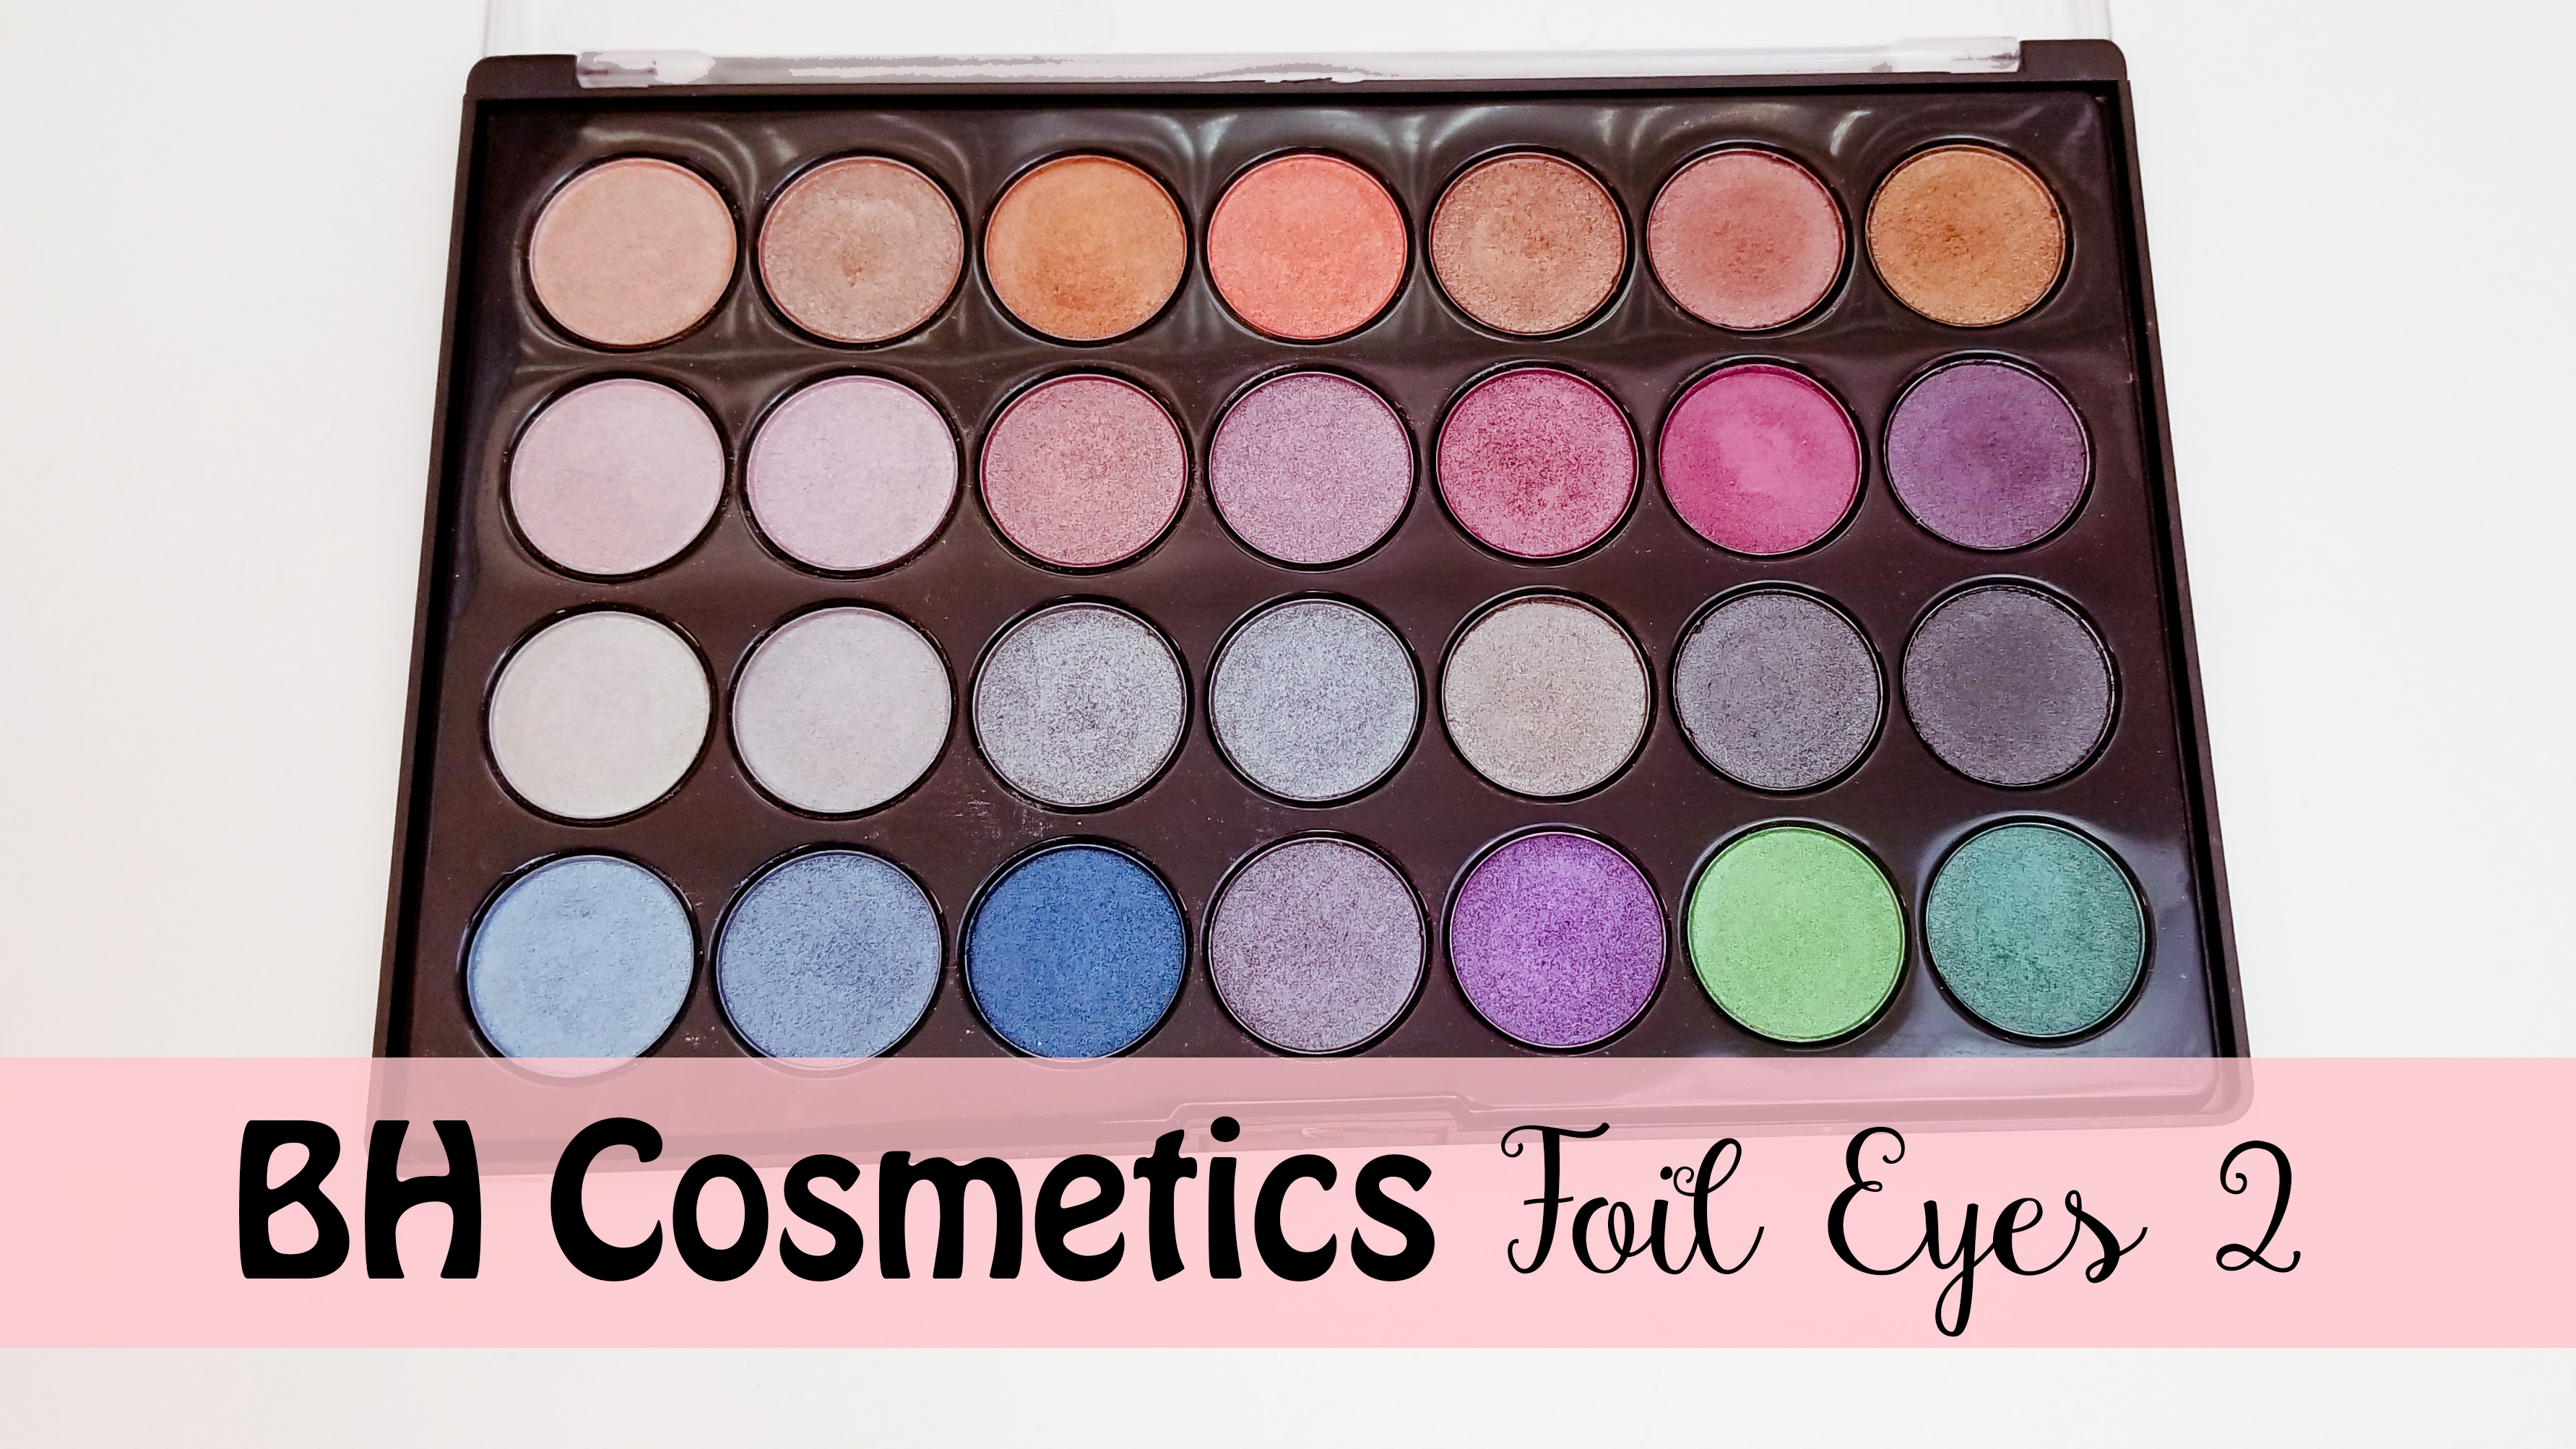 BH Cosmetics Weekend Festival 20 Color Shadow Palette! BH Cosmetics 28 Color Smoky Eye Palette. by BHCosmetics. $ $ 16 FREE Shipping on eligible orders. Only 1 left in stock - order soon. 3 out of 5 stars Product Description our new Smokey Eyes - Color Eyeshadow Palette has the perfect.